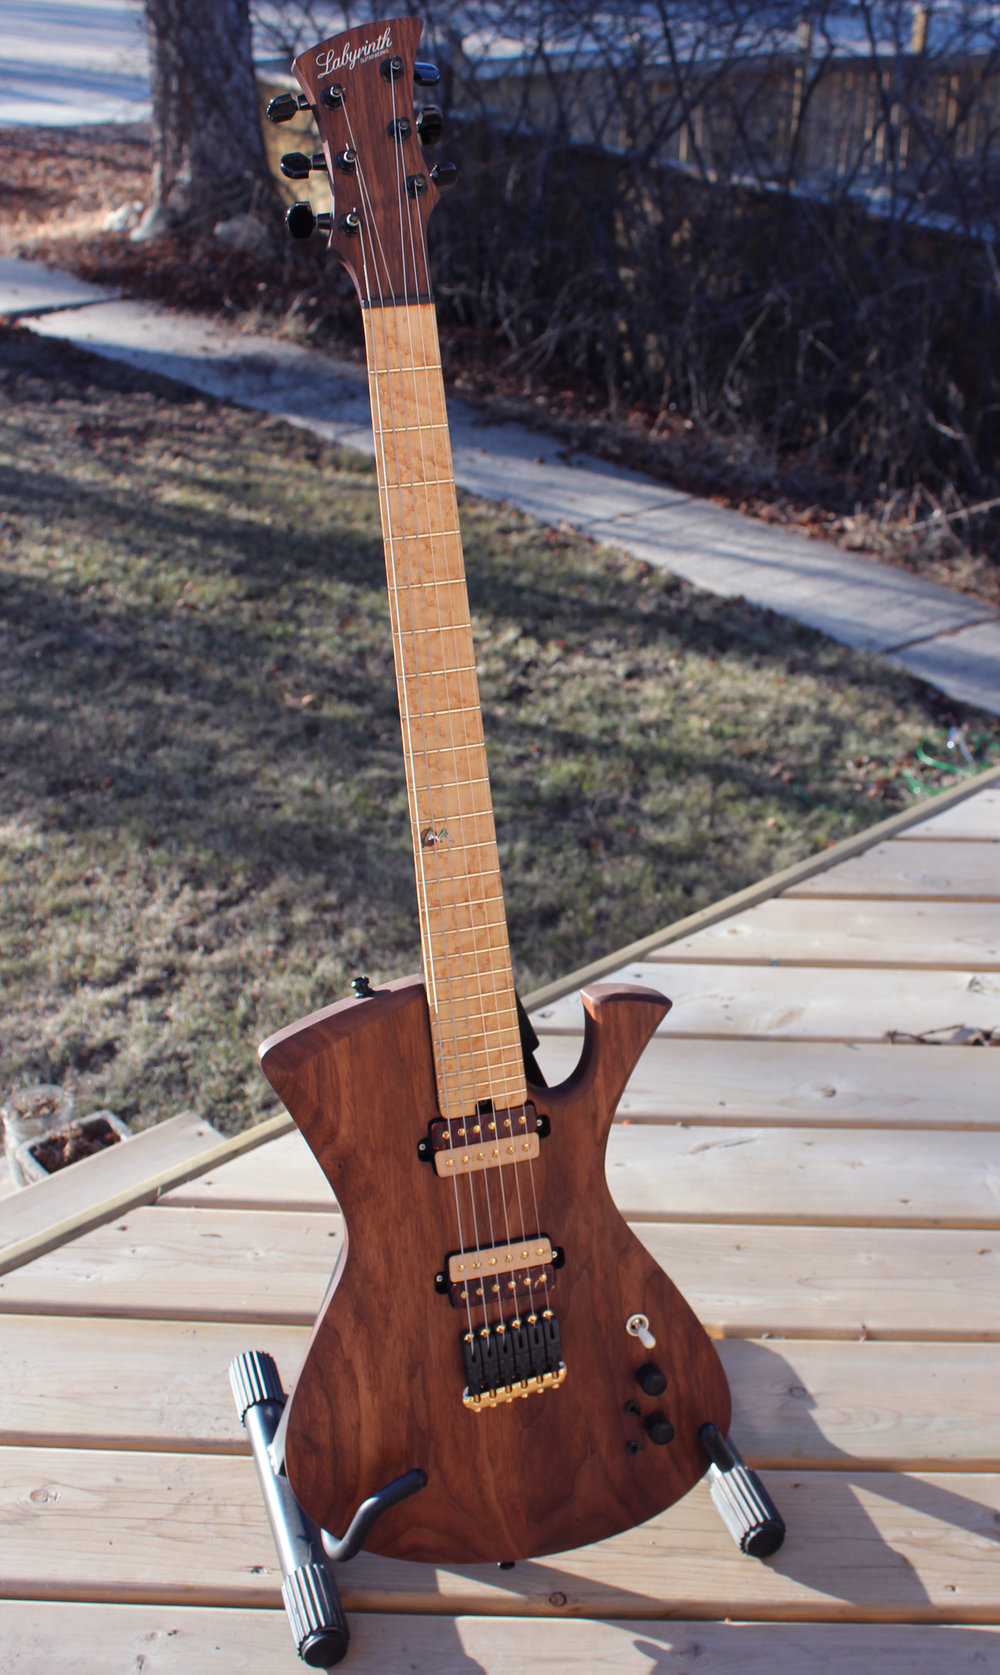 Dissentient - The first Dissentient prototype, also Labyrinth #001. Walnut body, 25.5